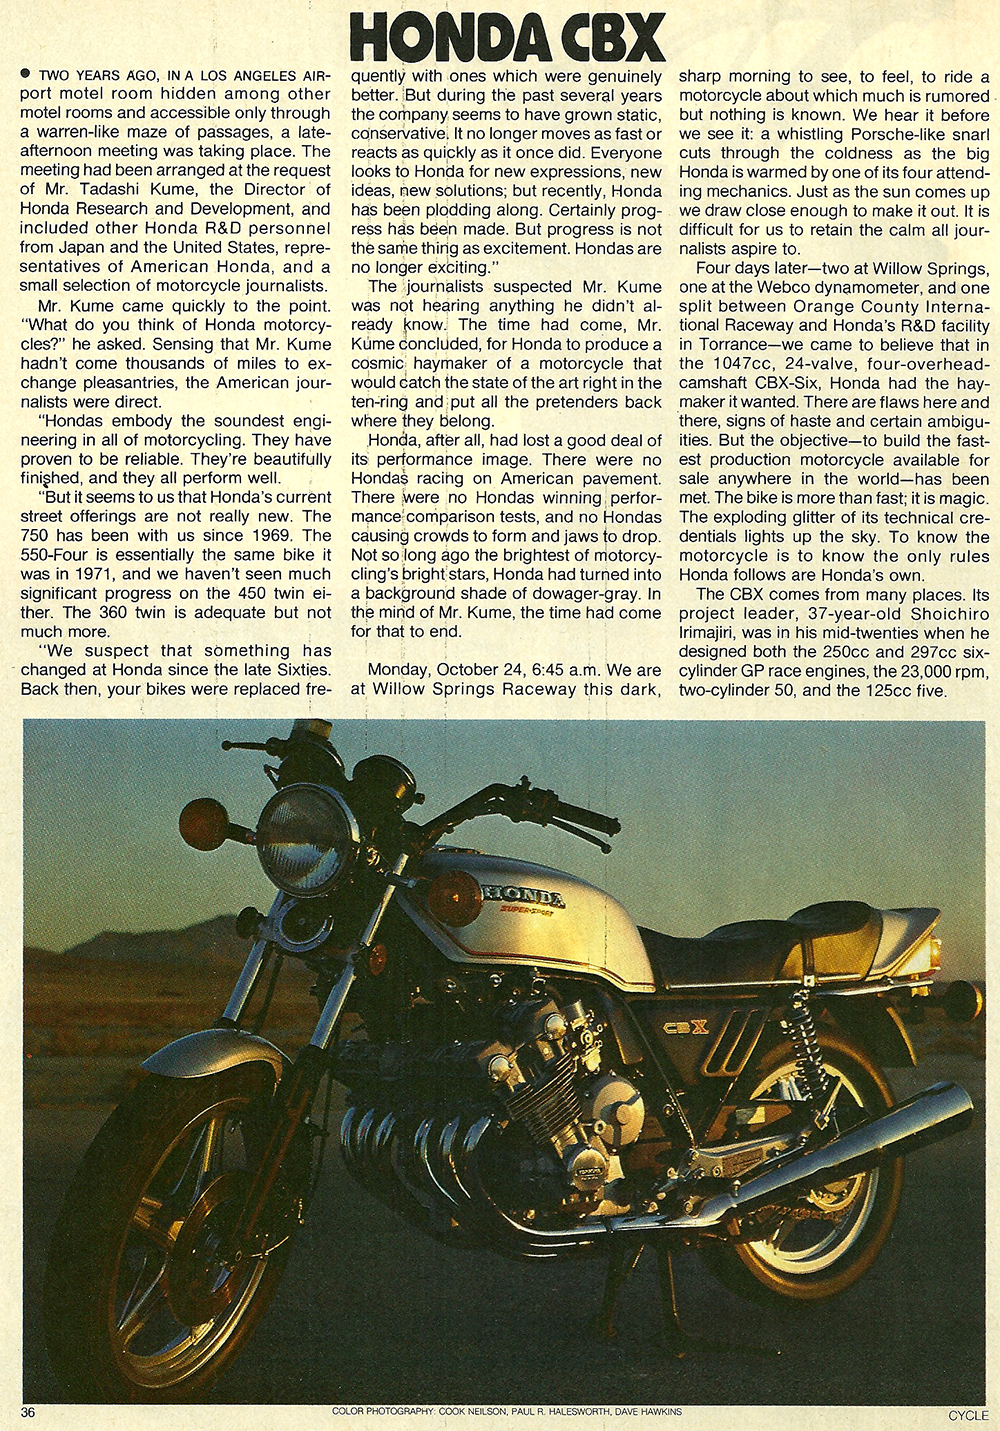 1978 Honda CBX Super Sport road test 03.jpg